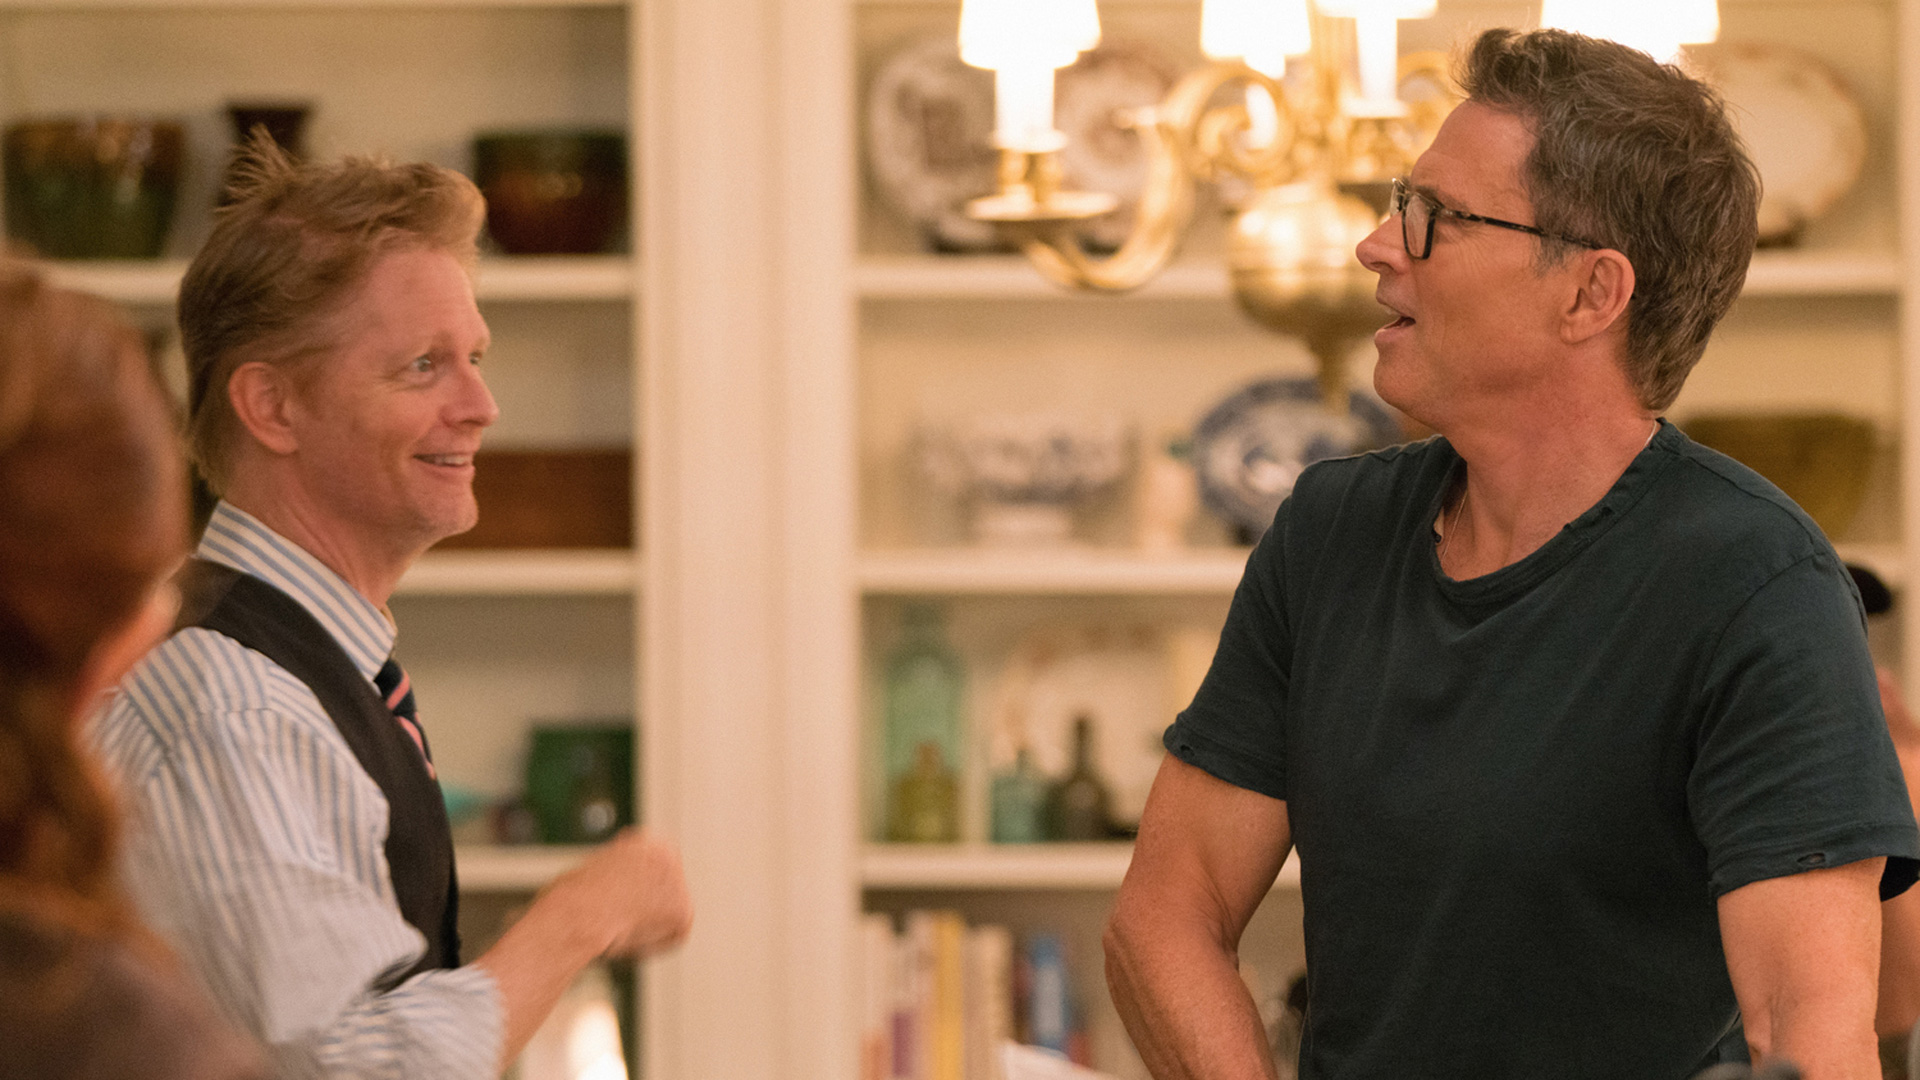 Executive Producer Eric Stoltz has a chat with Tim Daly.